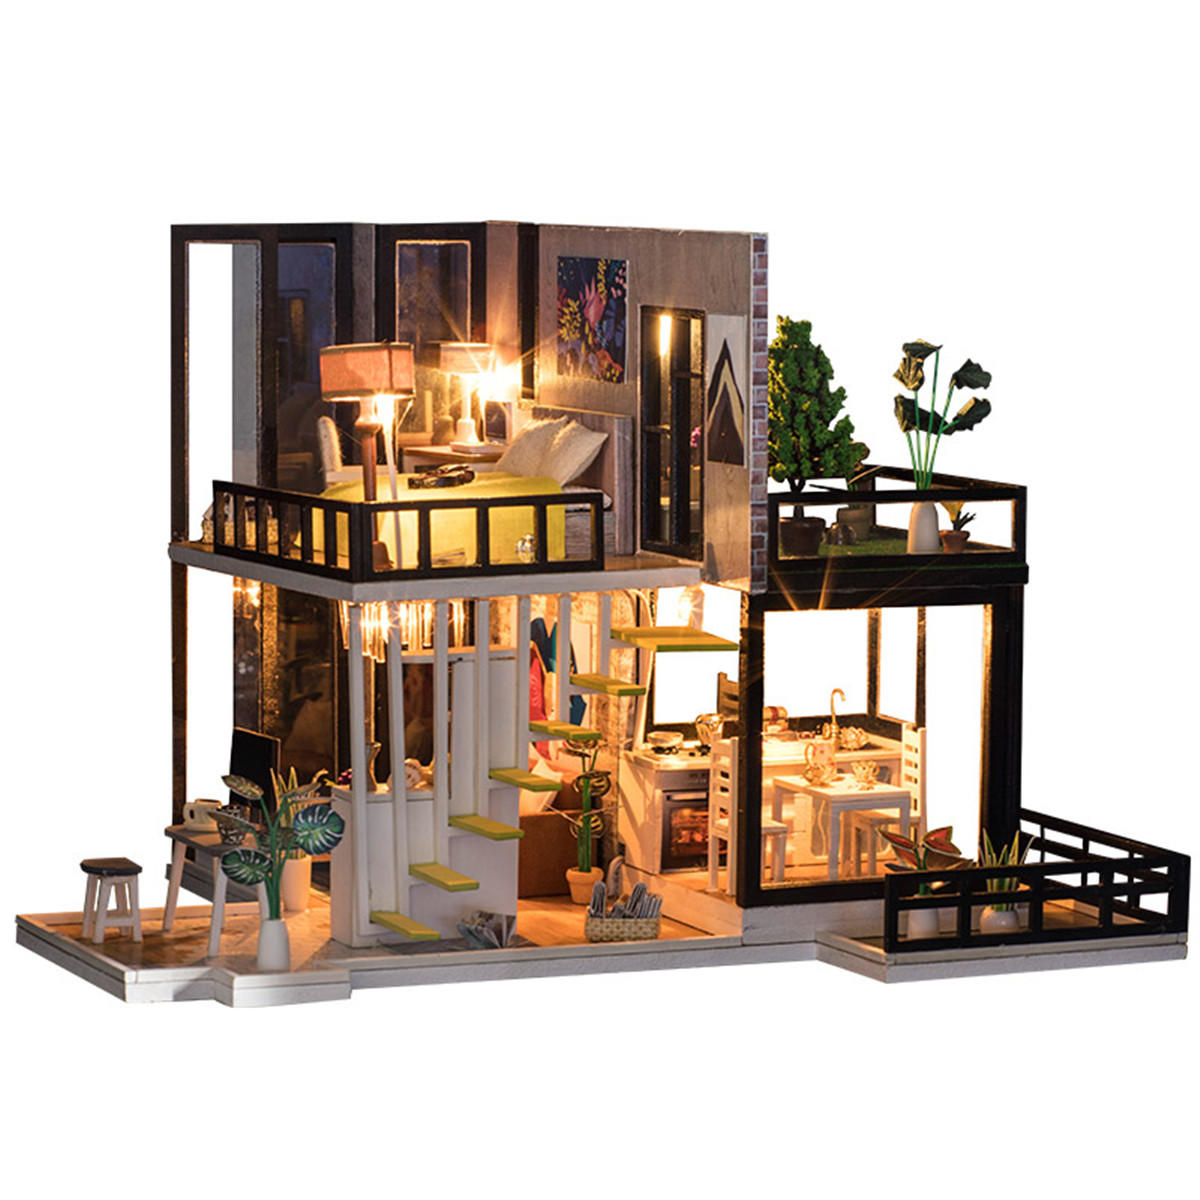 DIY Dollhouse Miniature Kit Doll House With Furniture Gift Craft Toy - 1